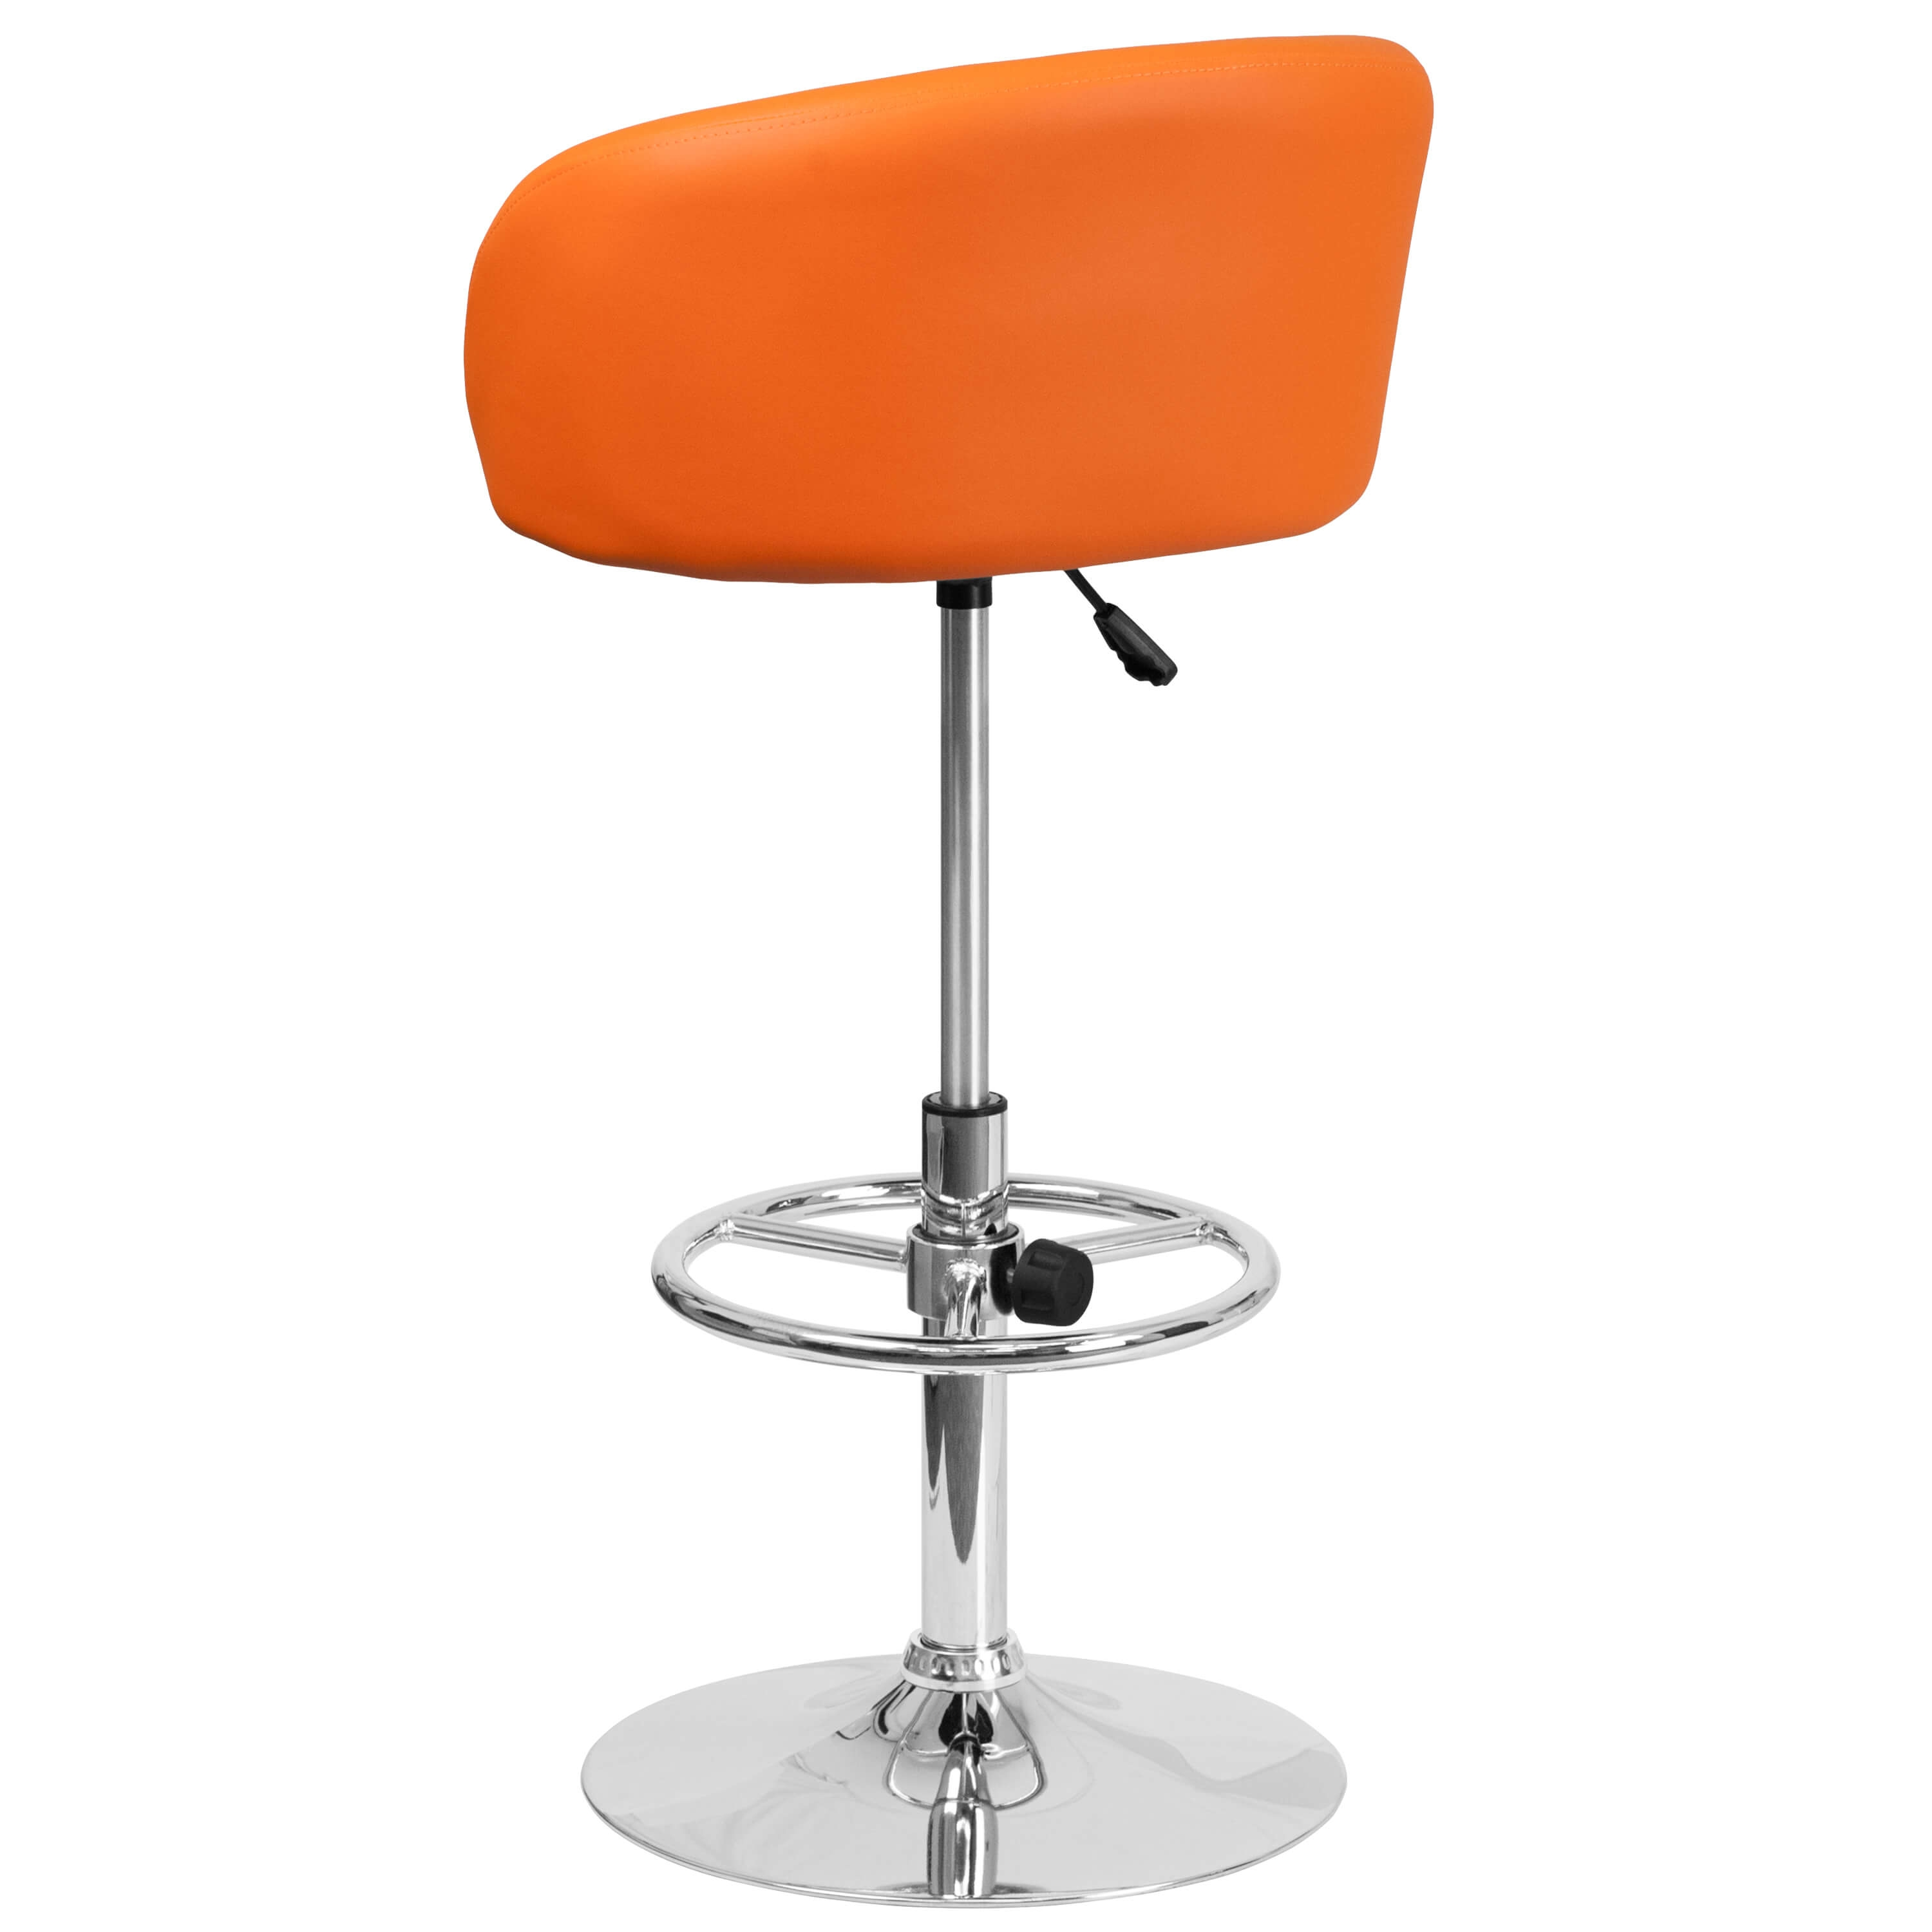 Adjustable colorful bar stools back view